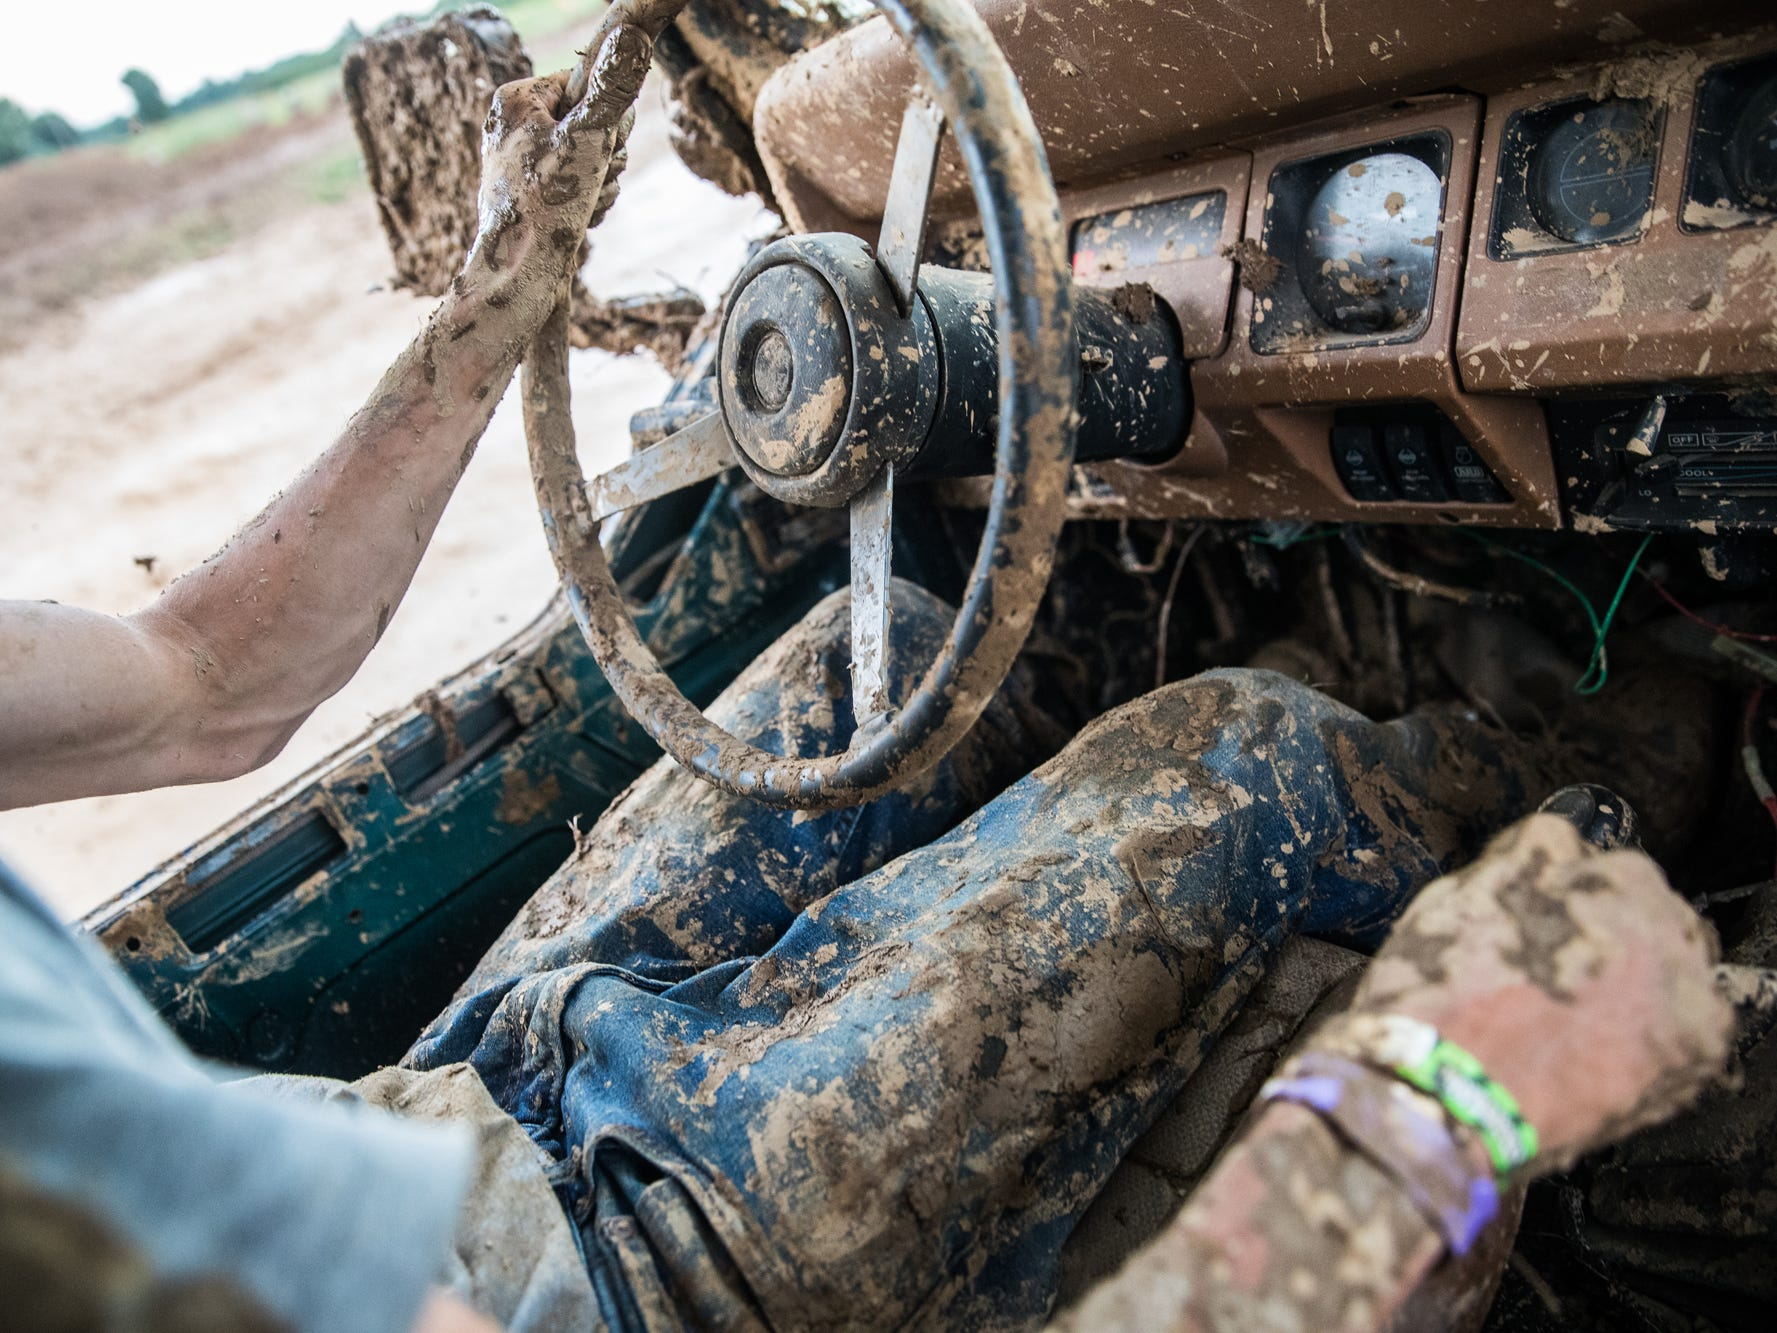 "Brandan Pryatt, of Williams, Ind., takes a 1995, 4 cylinder, 2.4 liter Jeep Wrangler up and over a large hill and though various mud pits during the Redneck Rave at BlackSwan Mudpit in Medora, Ind., on Friday, July 20, 2018. ""I plan to blow this engine this weekend,"" he said. ""I'm going to run it hard."""